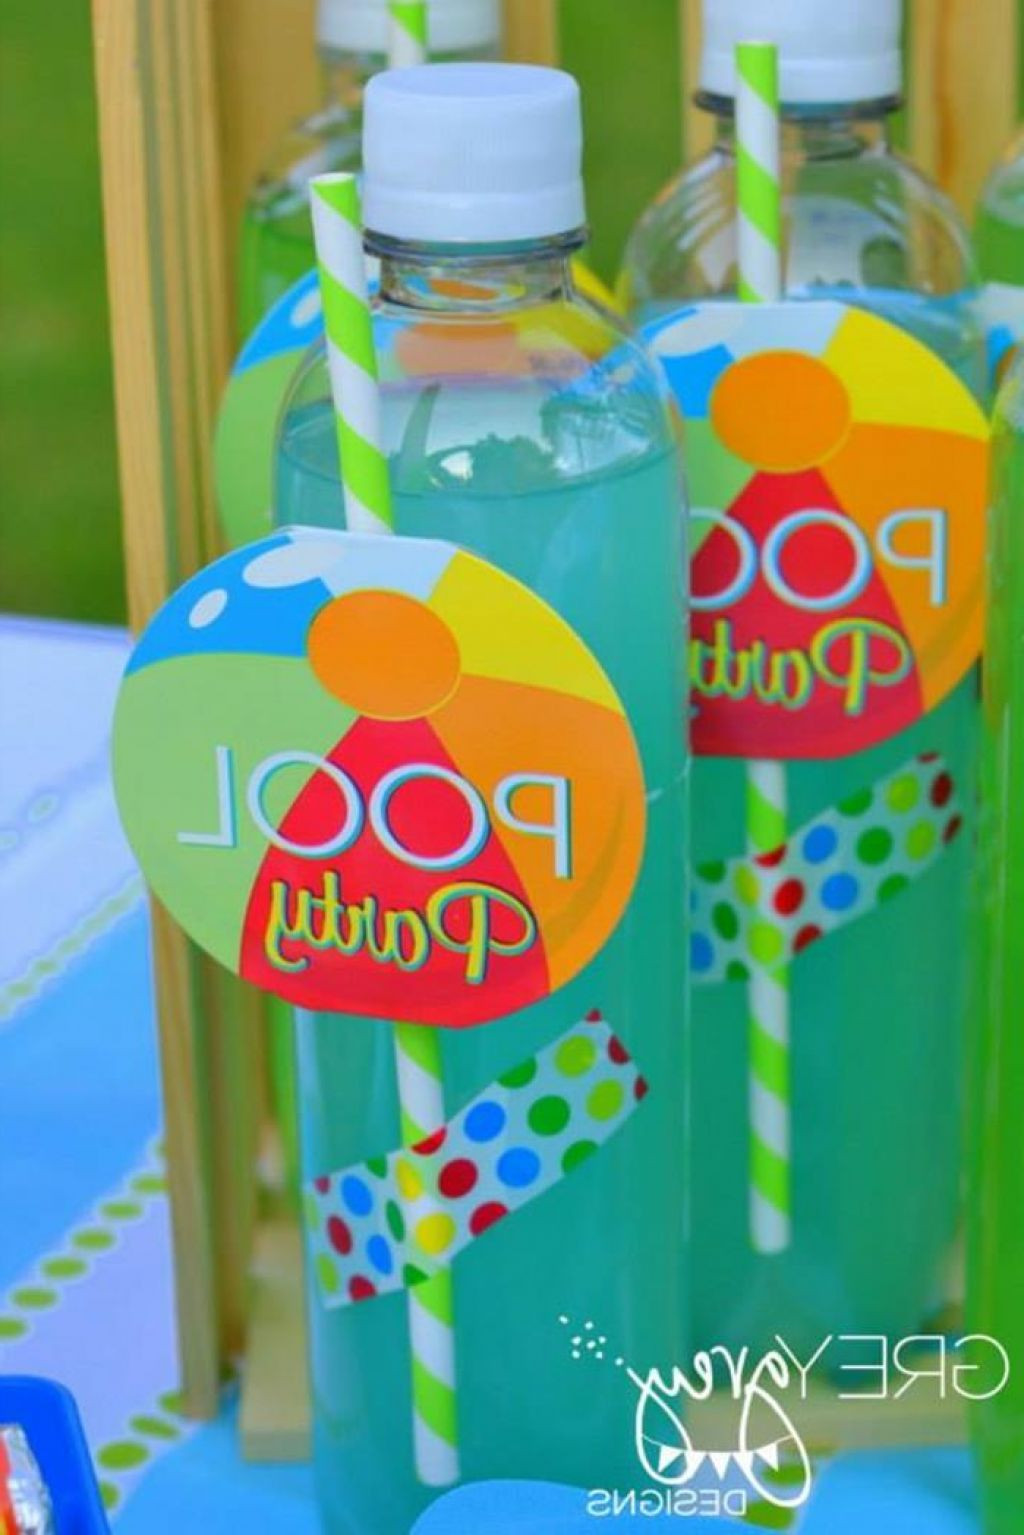 Cheap Pool Party Ideas  Beautiful Pool Party Decorations Ideas cheap pool party